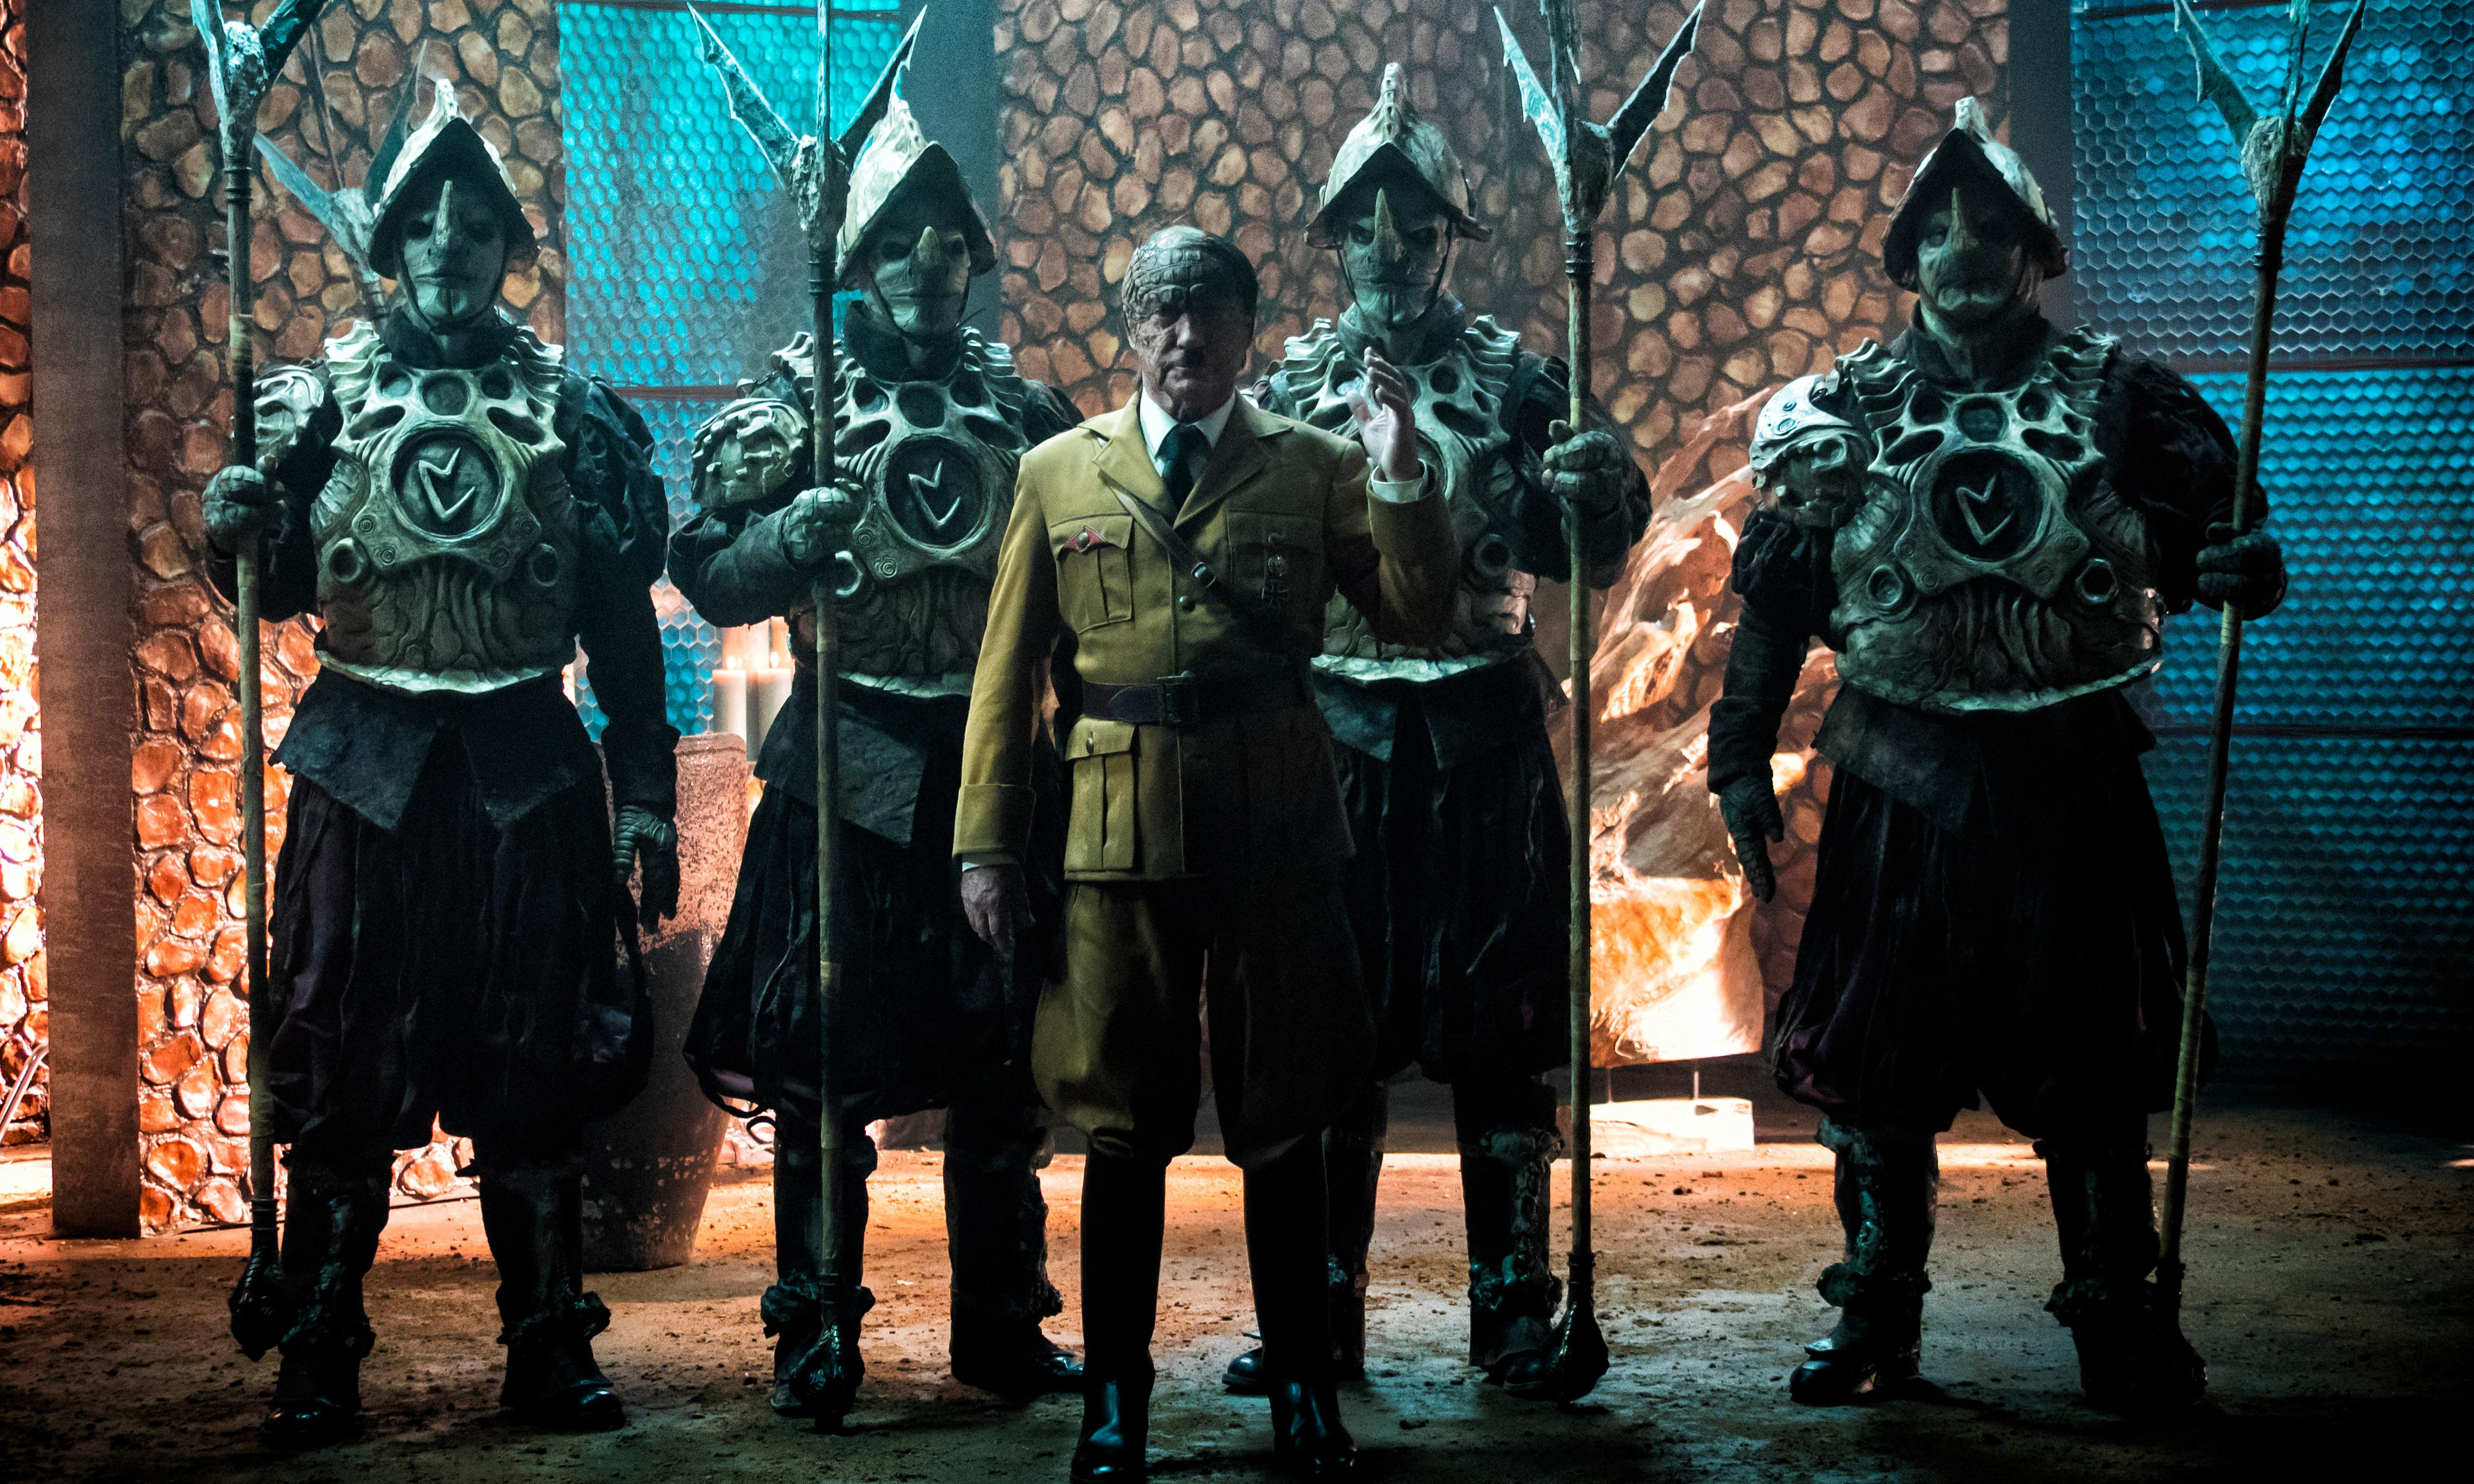 Iron Sky: The Coming Race review – woeful return of the lunar refugees